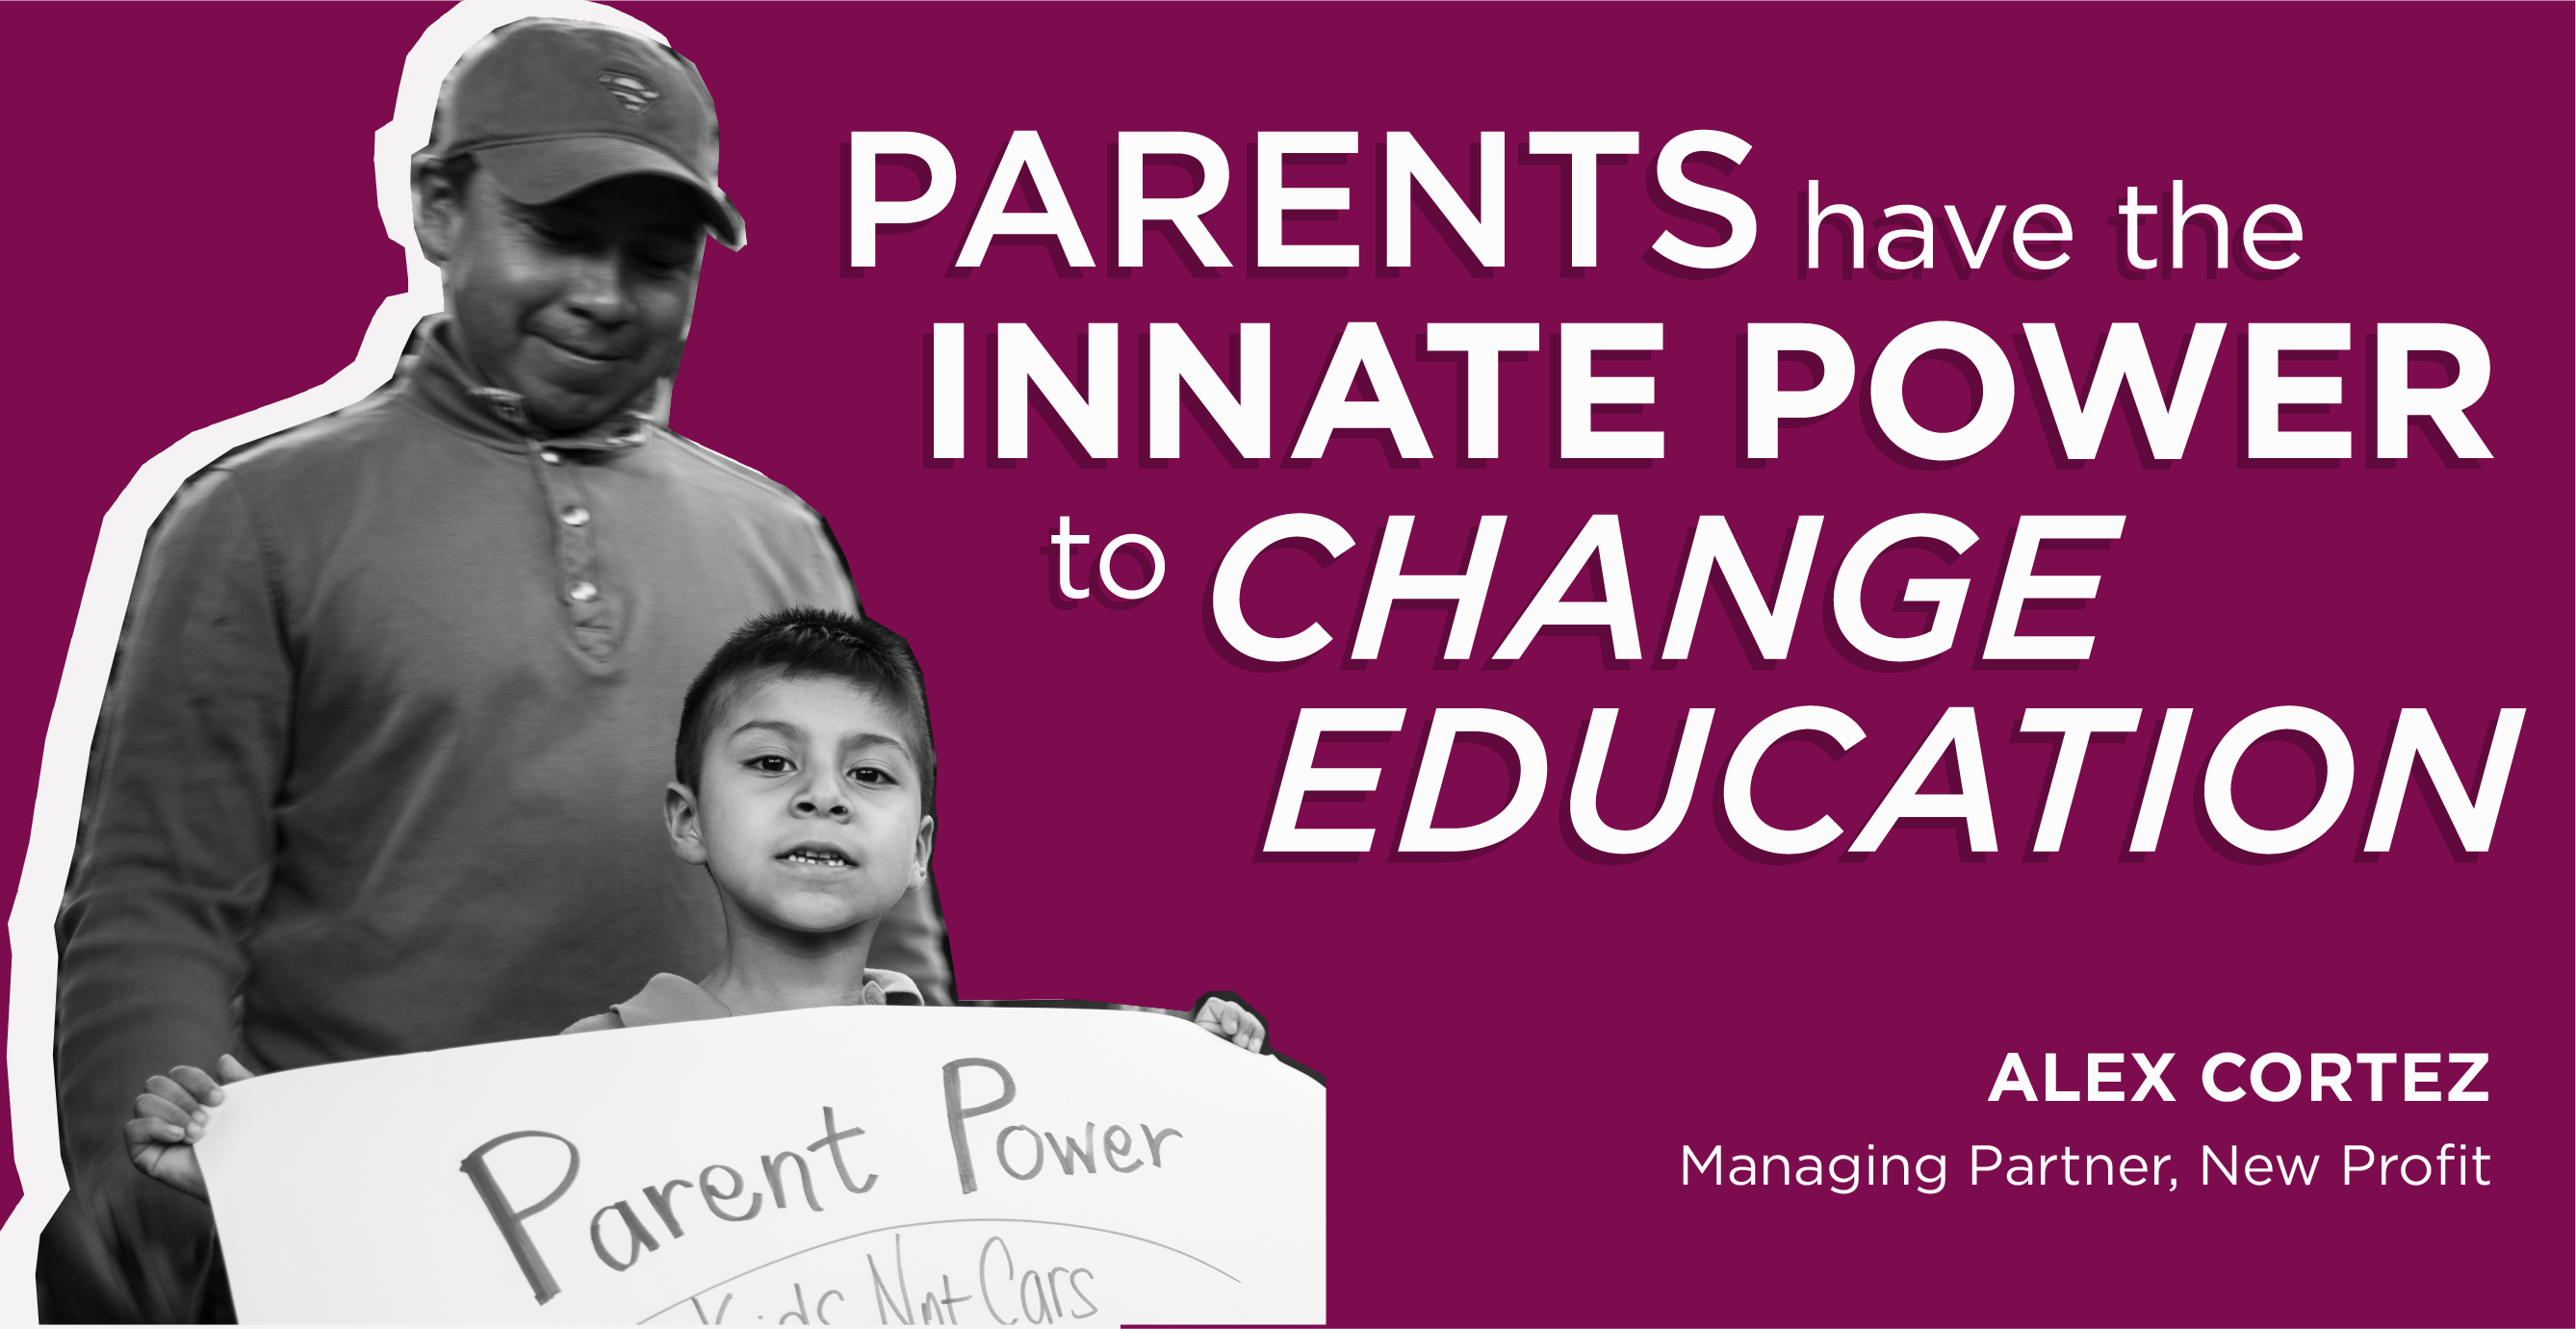 """Parents have the innate power to change education"" - Alex Cortez, Managing Partner, New Profit"